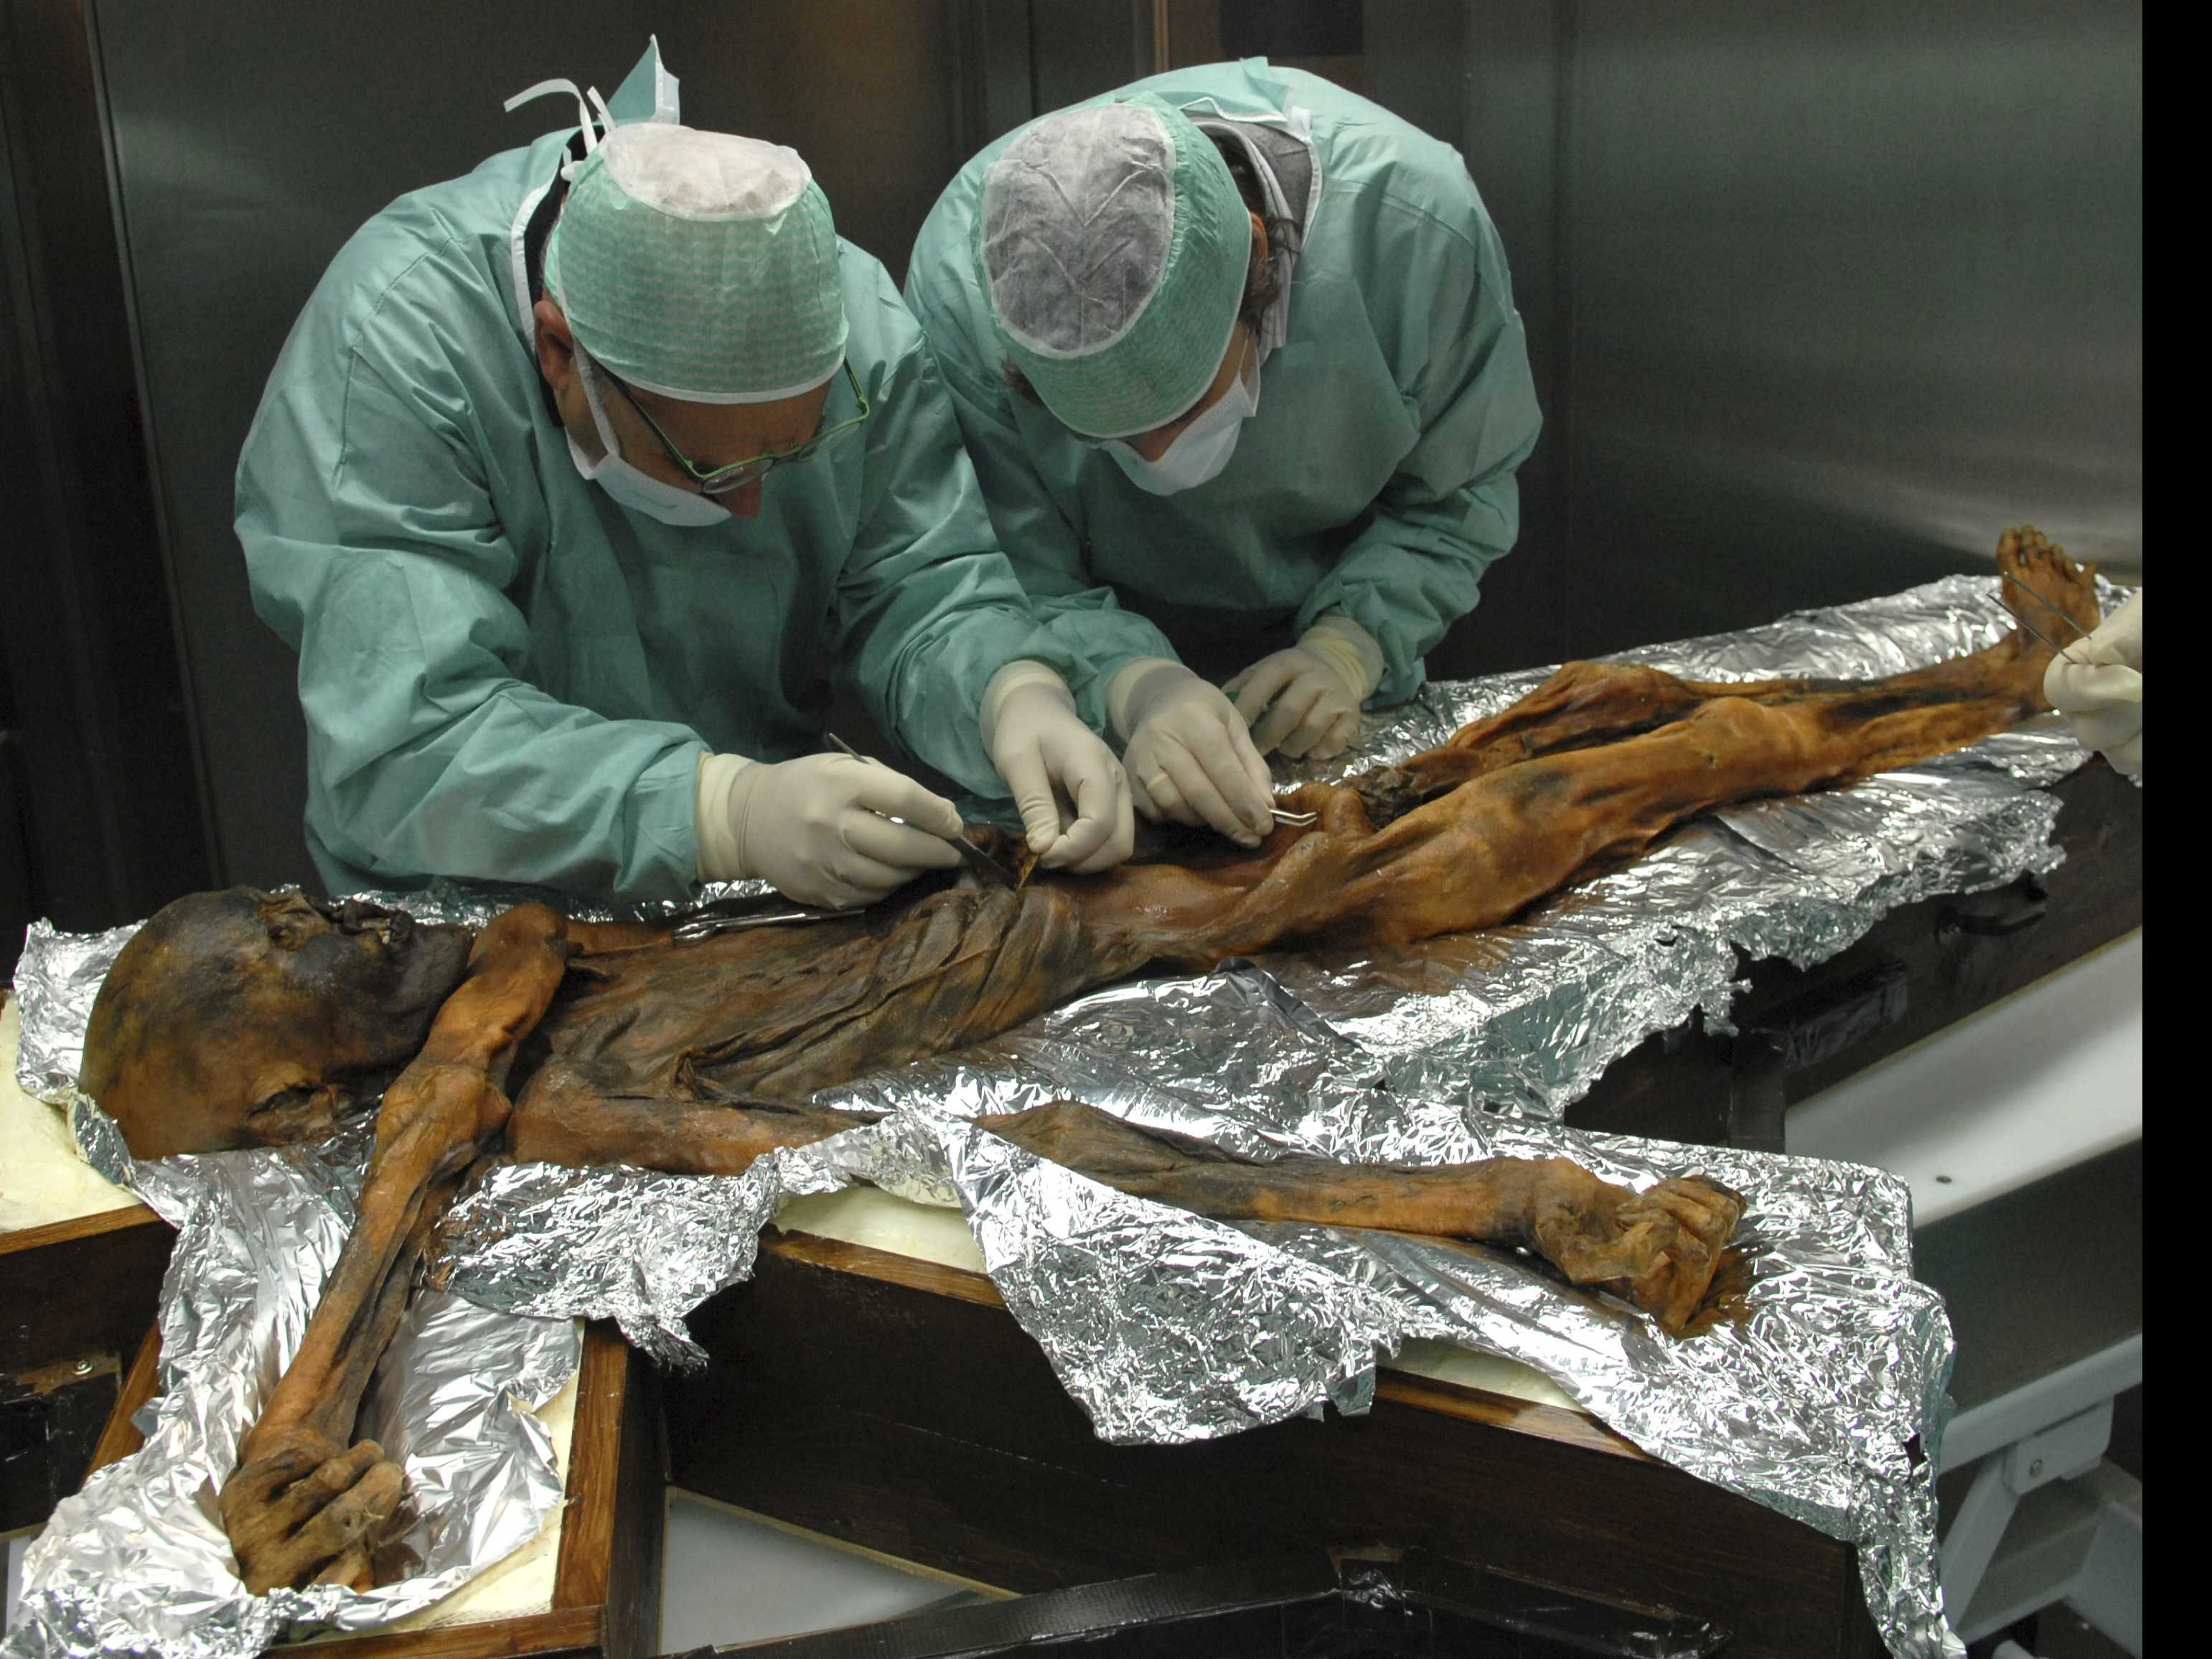 Ancient 'Iceman' Shows Signs of A Well-Balanced Last Meal